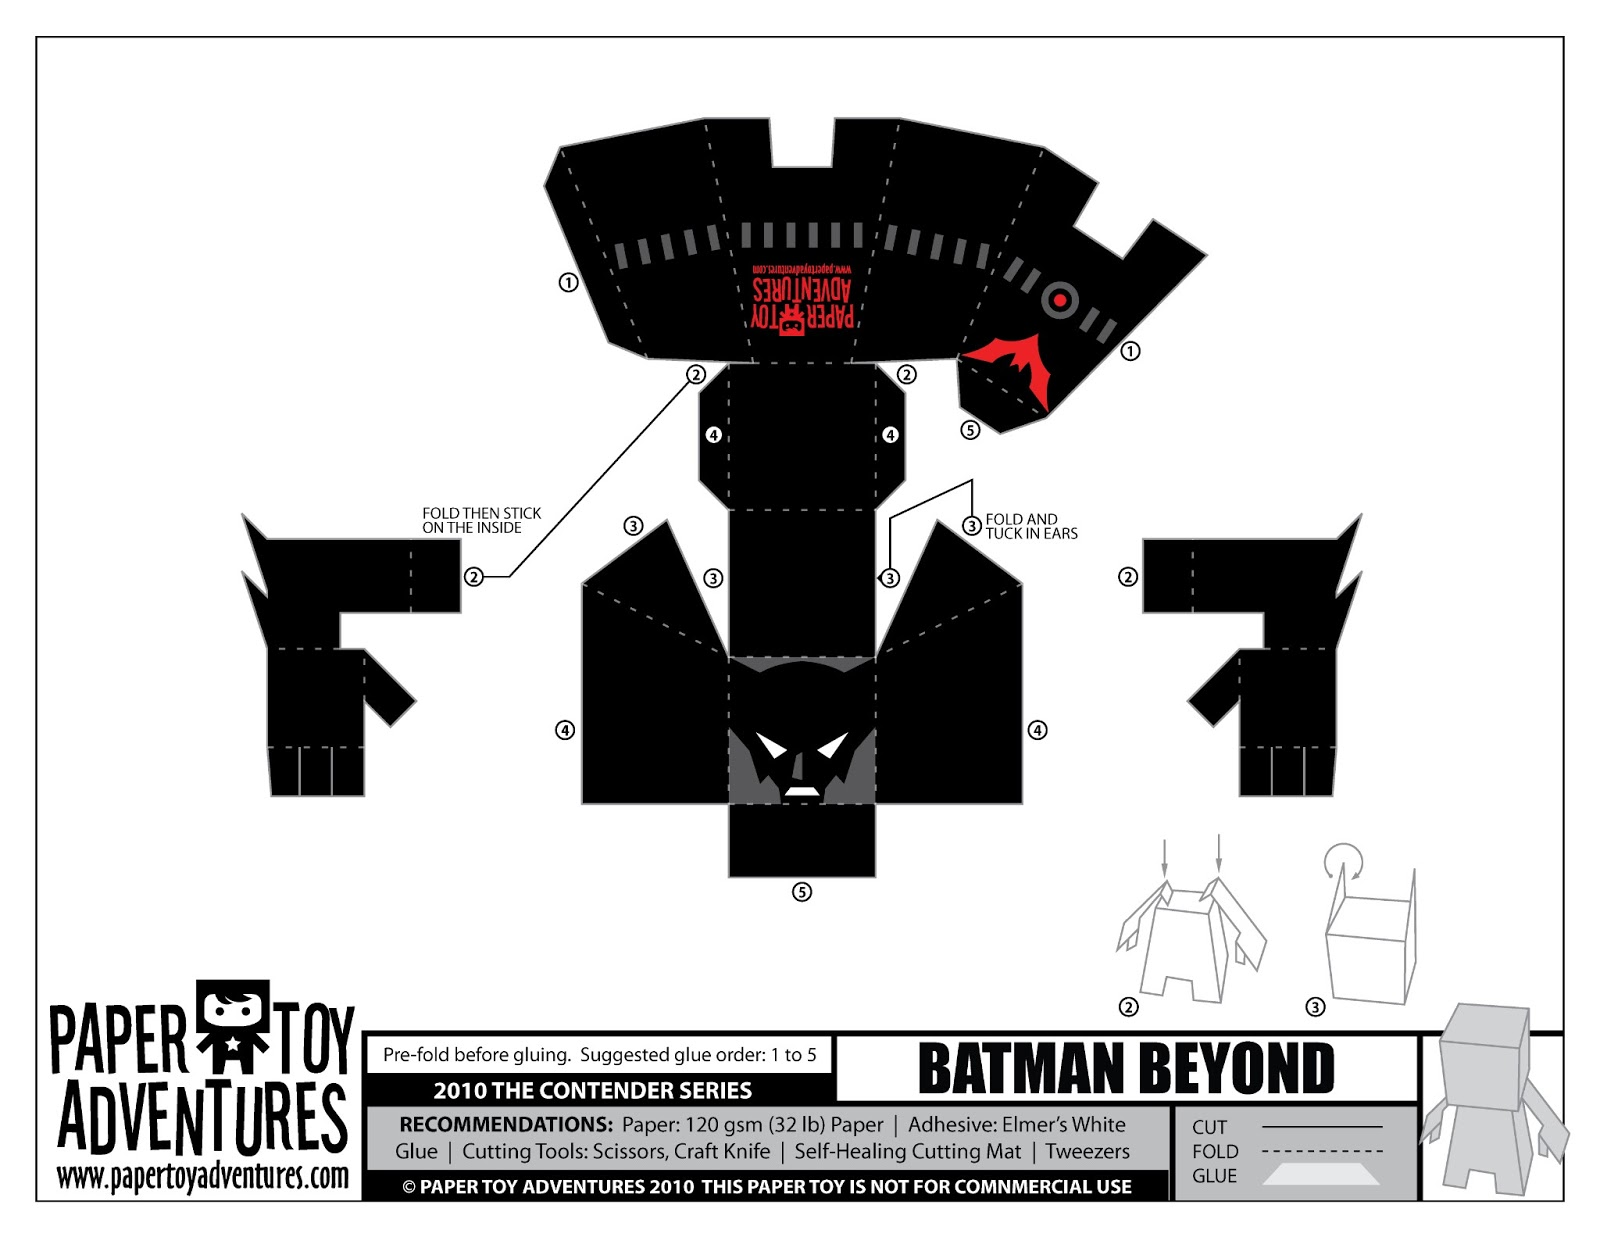 demon works one page papercraft templates